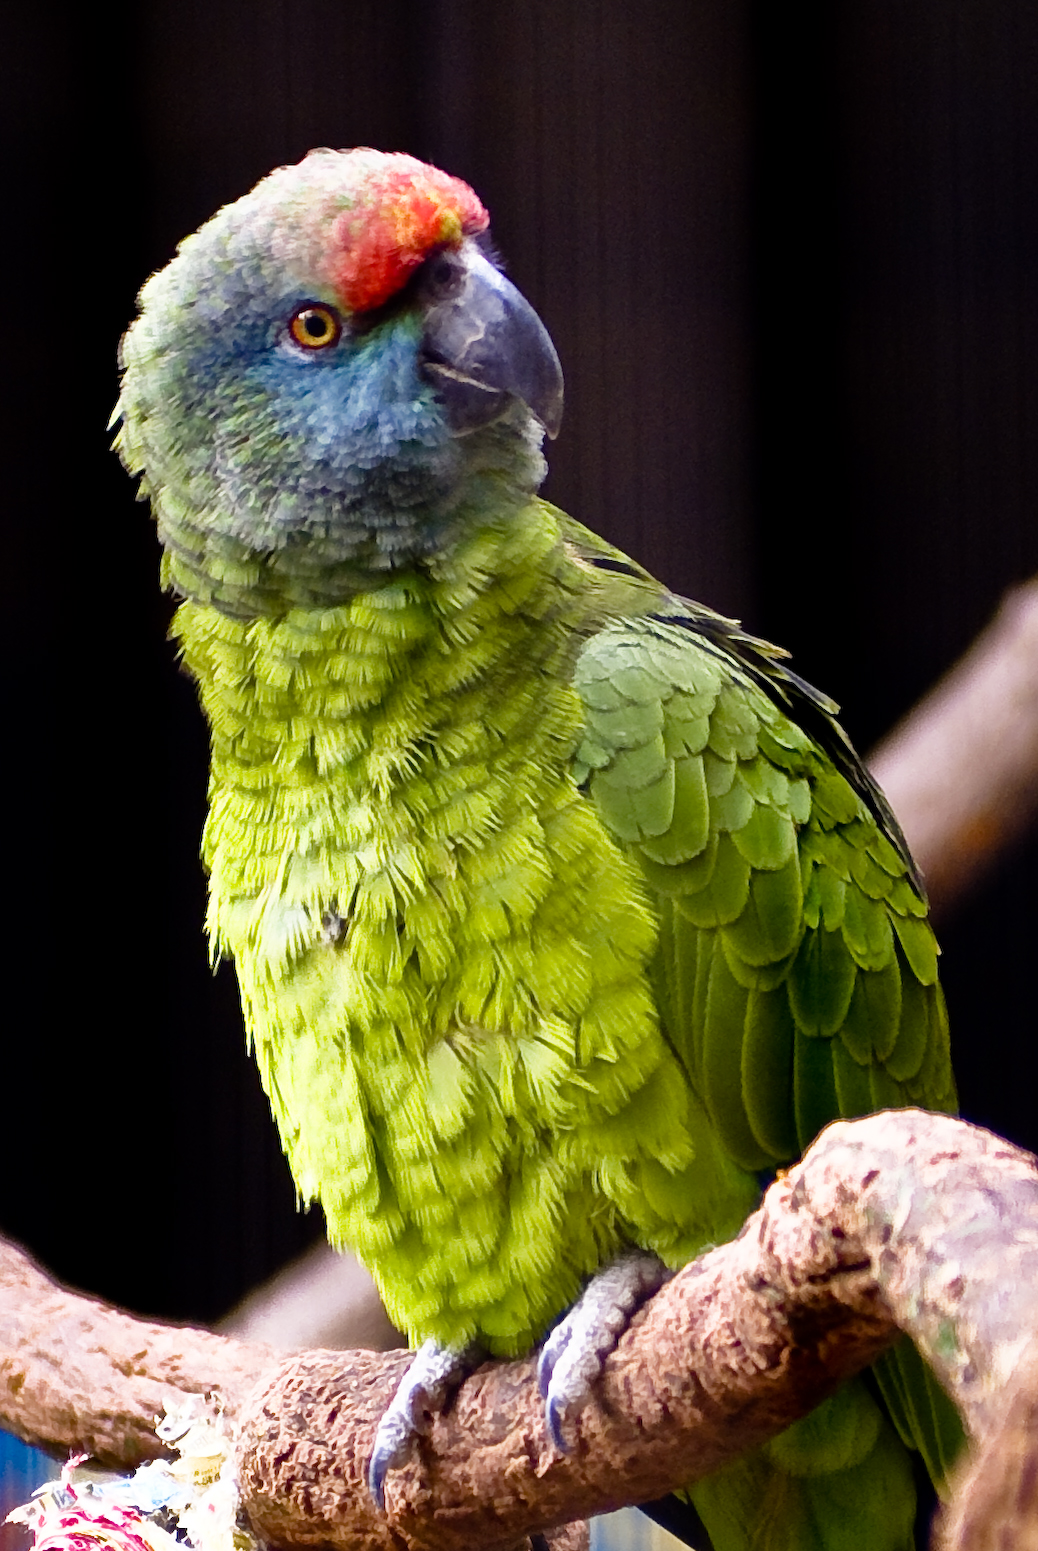 By Christopher G from Tulsa Oklahoma, USA (Amazon Parrot) [CC BY-SA 2.0 (http://creativecommons.org/licenses/by-sa/2.0)], via Wikimedia Commons